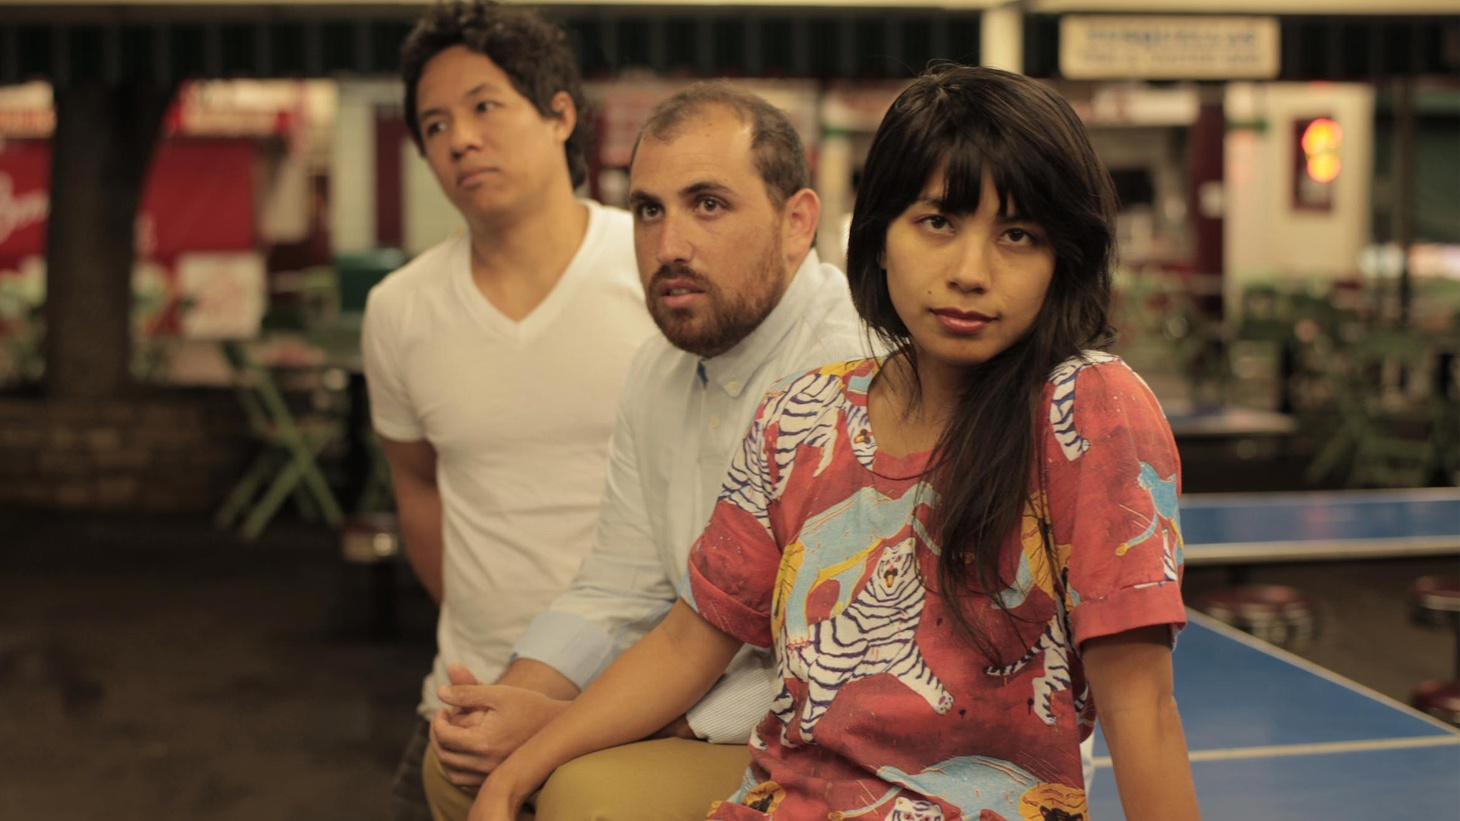 LA trio Pollyn has been busy since its 2009 debut remixing tracks for the likes of Gorillaz and Buffalo Daughter, releasing EP's and opening for KCRW favorites Little Dragon and Dengue Fever...